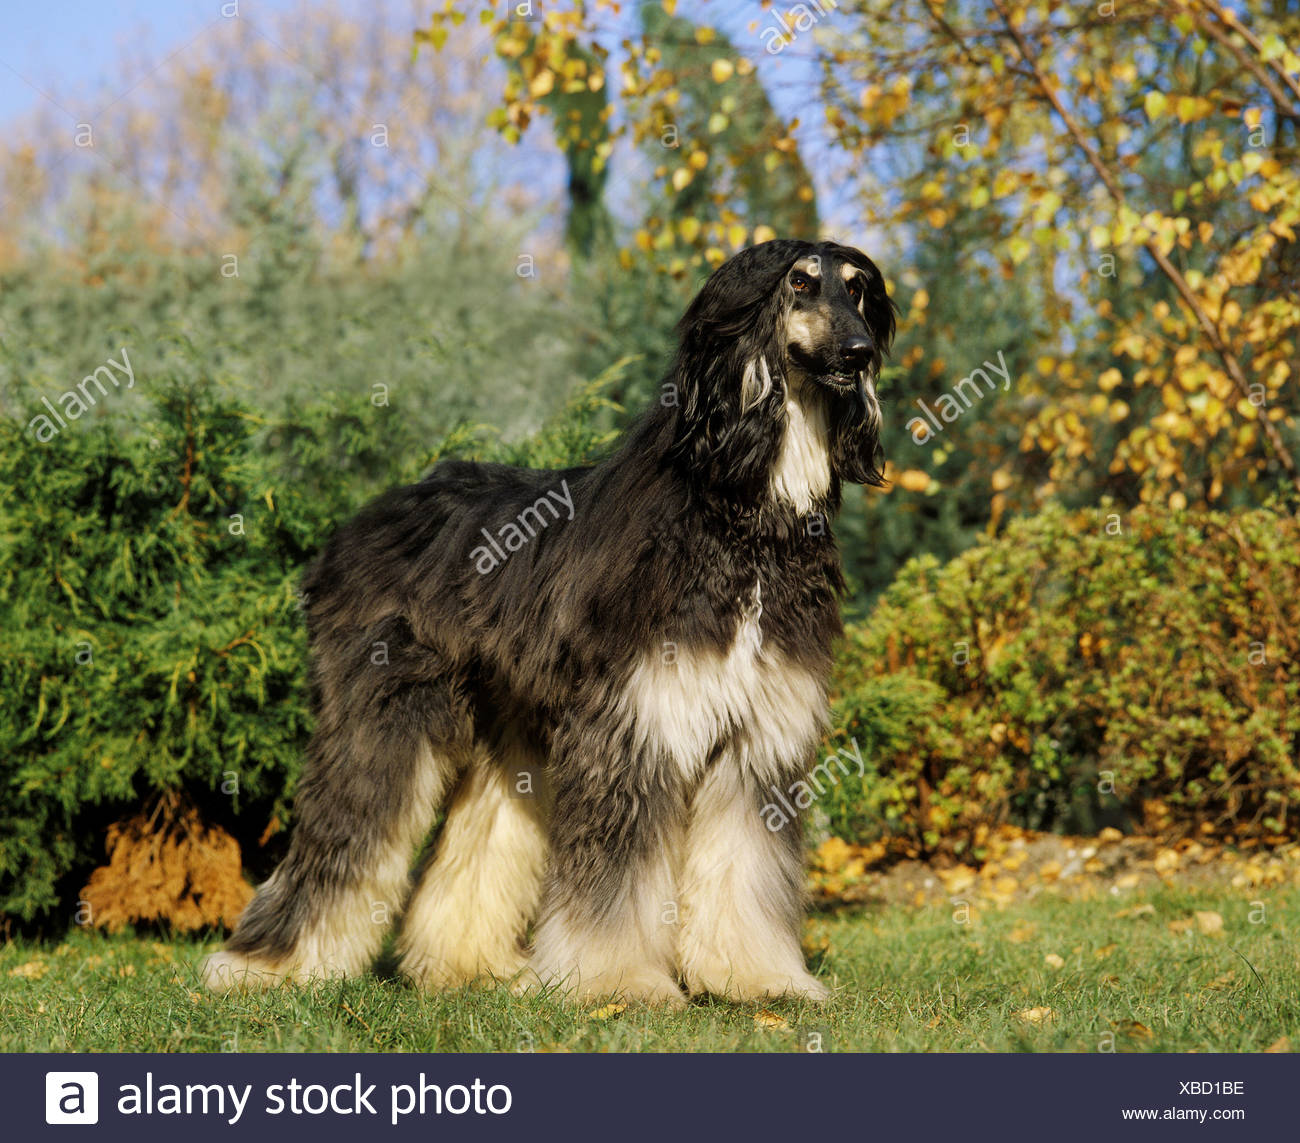 Afghan Hound, Adult Dog Standing on Grass Stock Photo